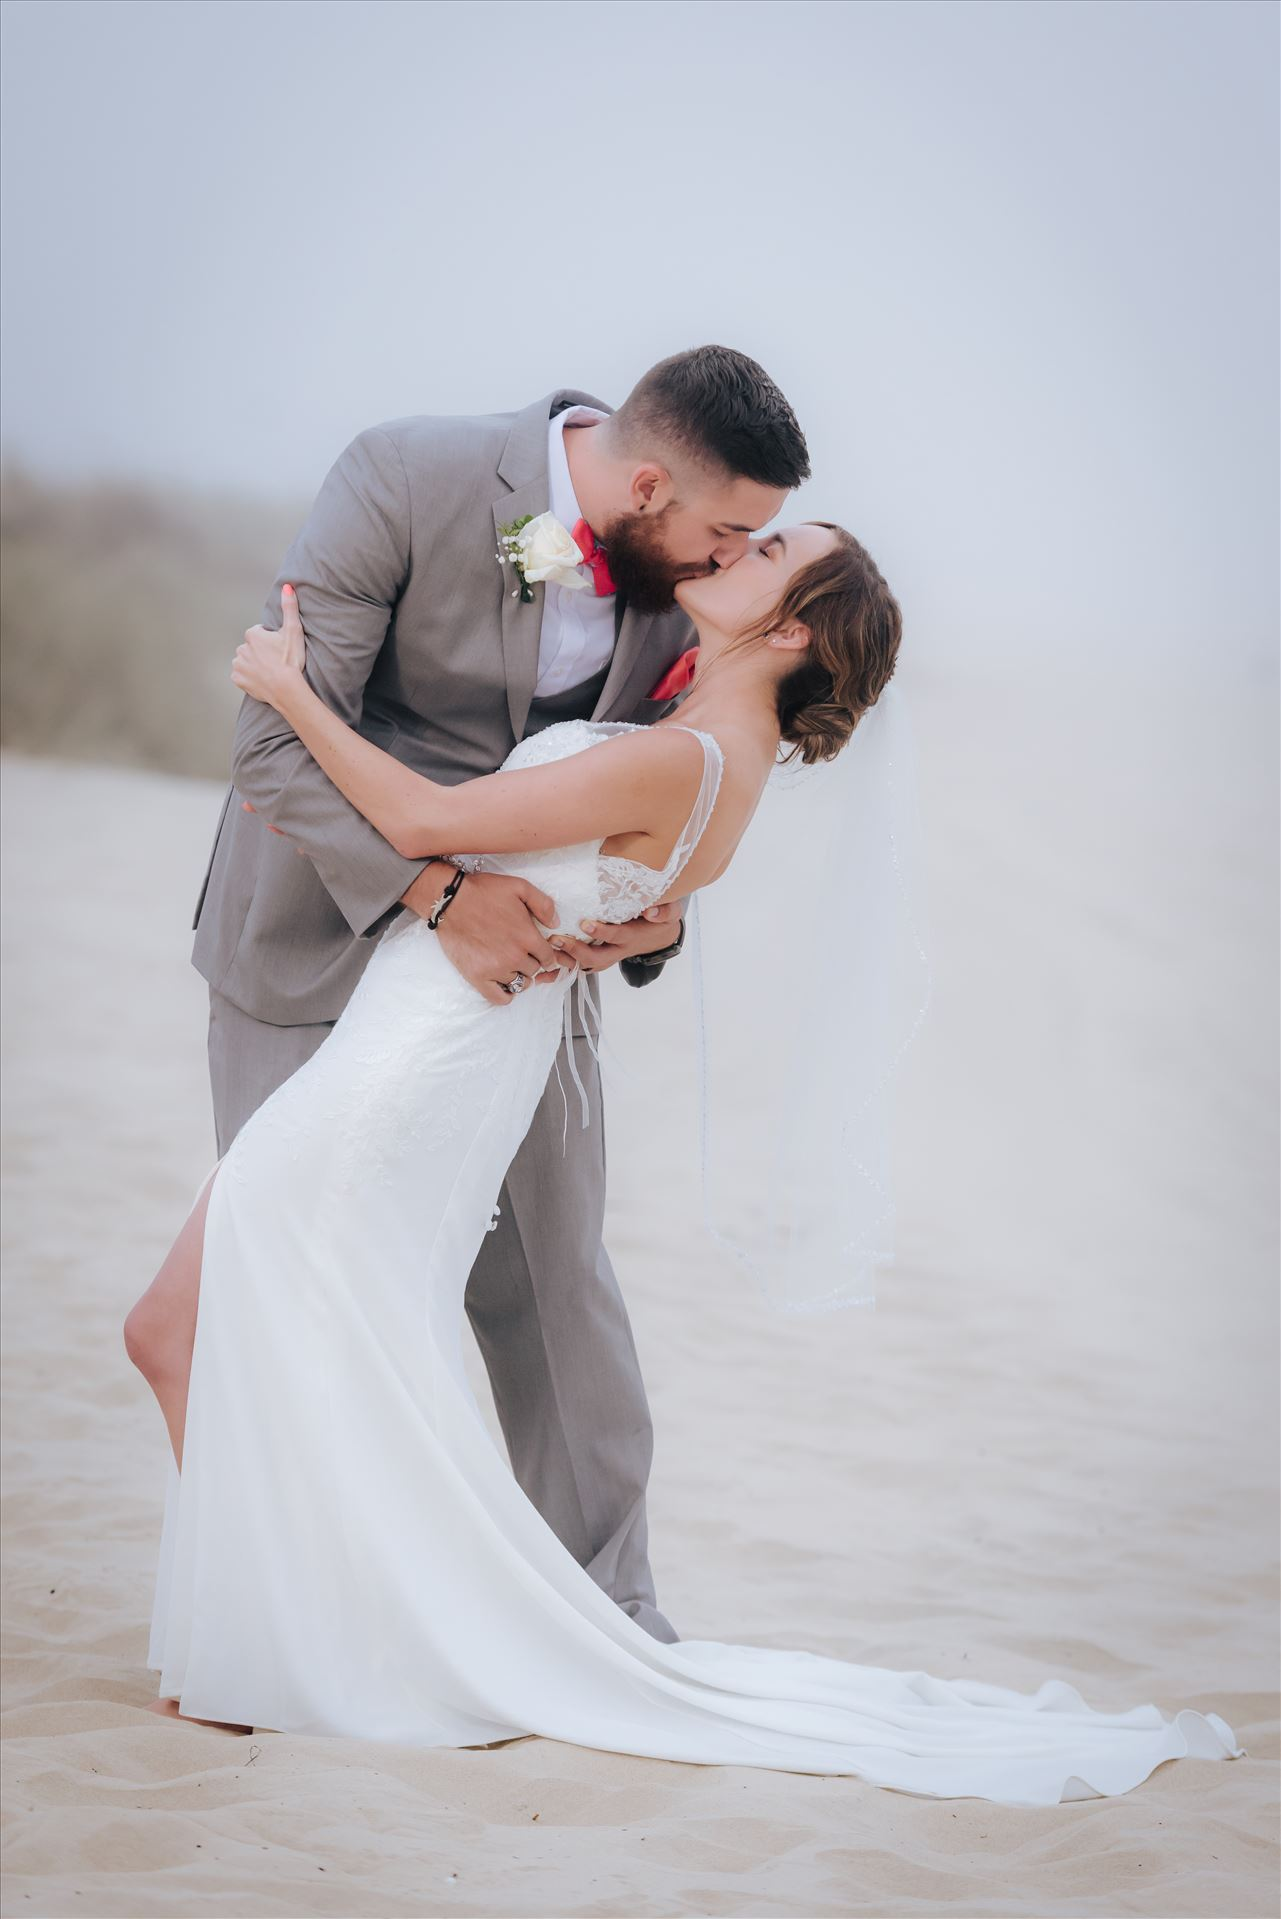 FW-8130.jpgRomantic wedding in the sand on Grover Beach in California.  Barefoot with surfboards and driftwood, tent and ceremony set up by Beach Butlerz, wedding photography by Mirror's Edge Photography.  Romantic Bride and Groom dip in the fog